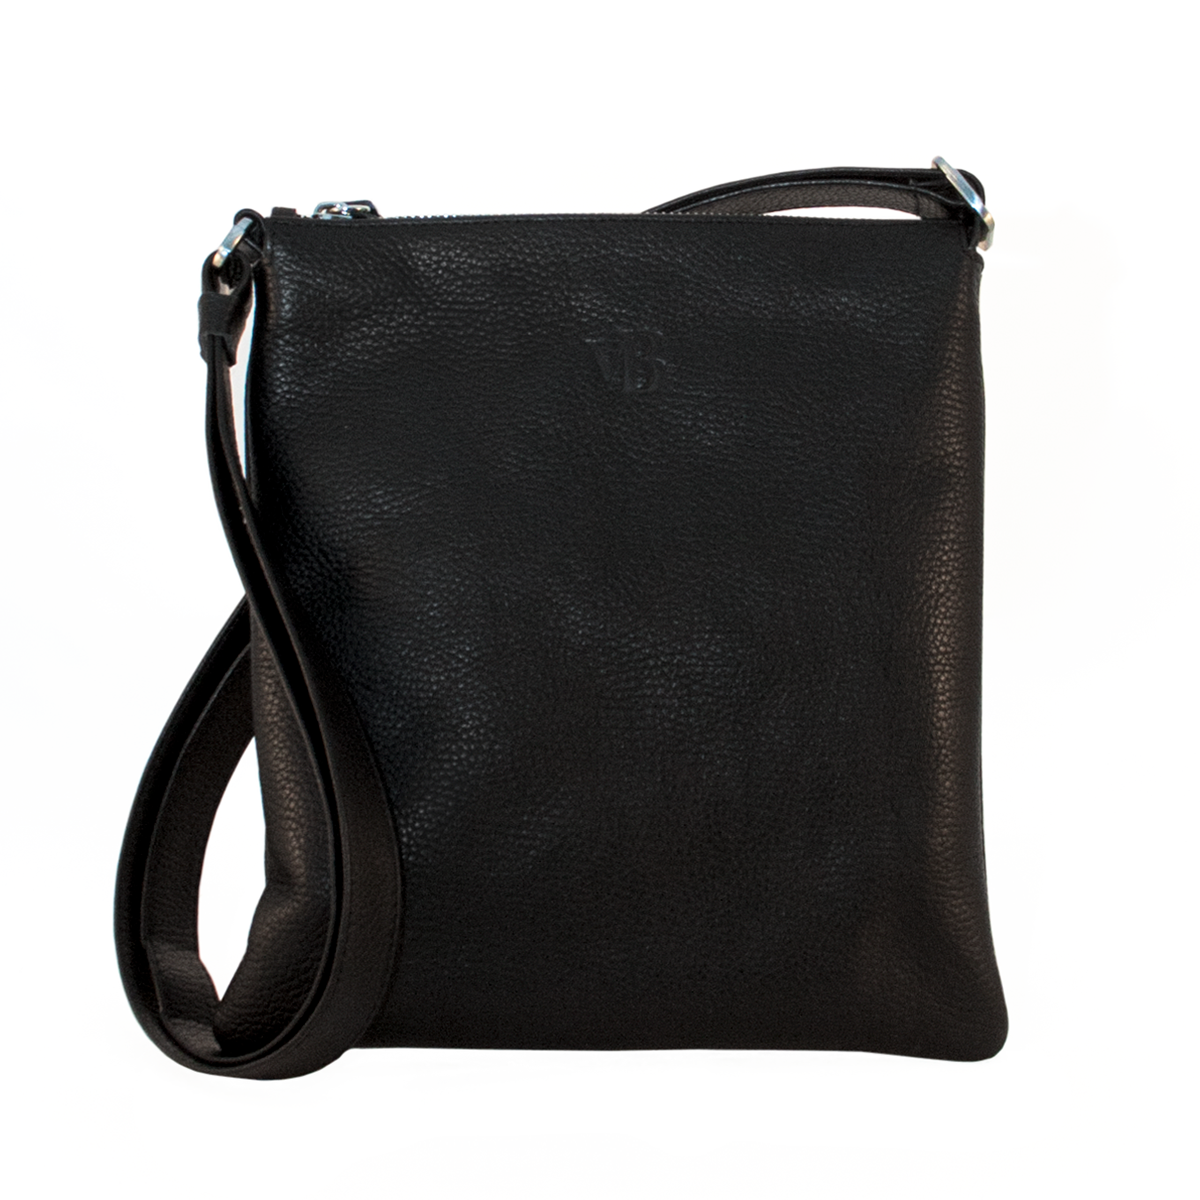 Small Handbag Black